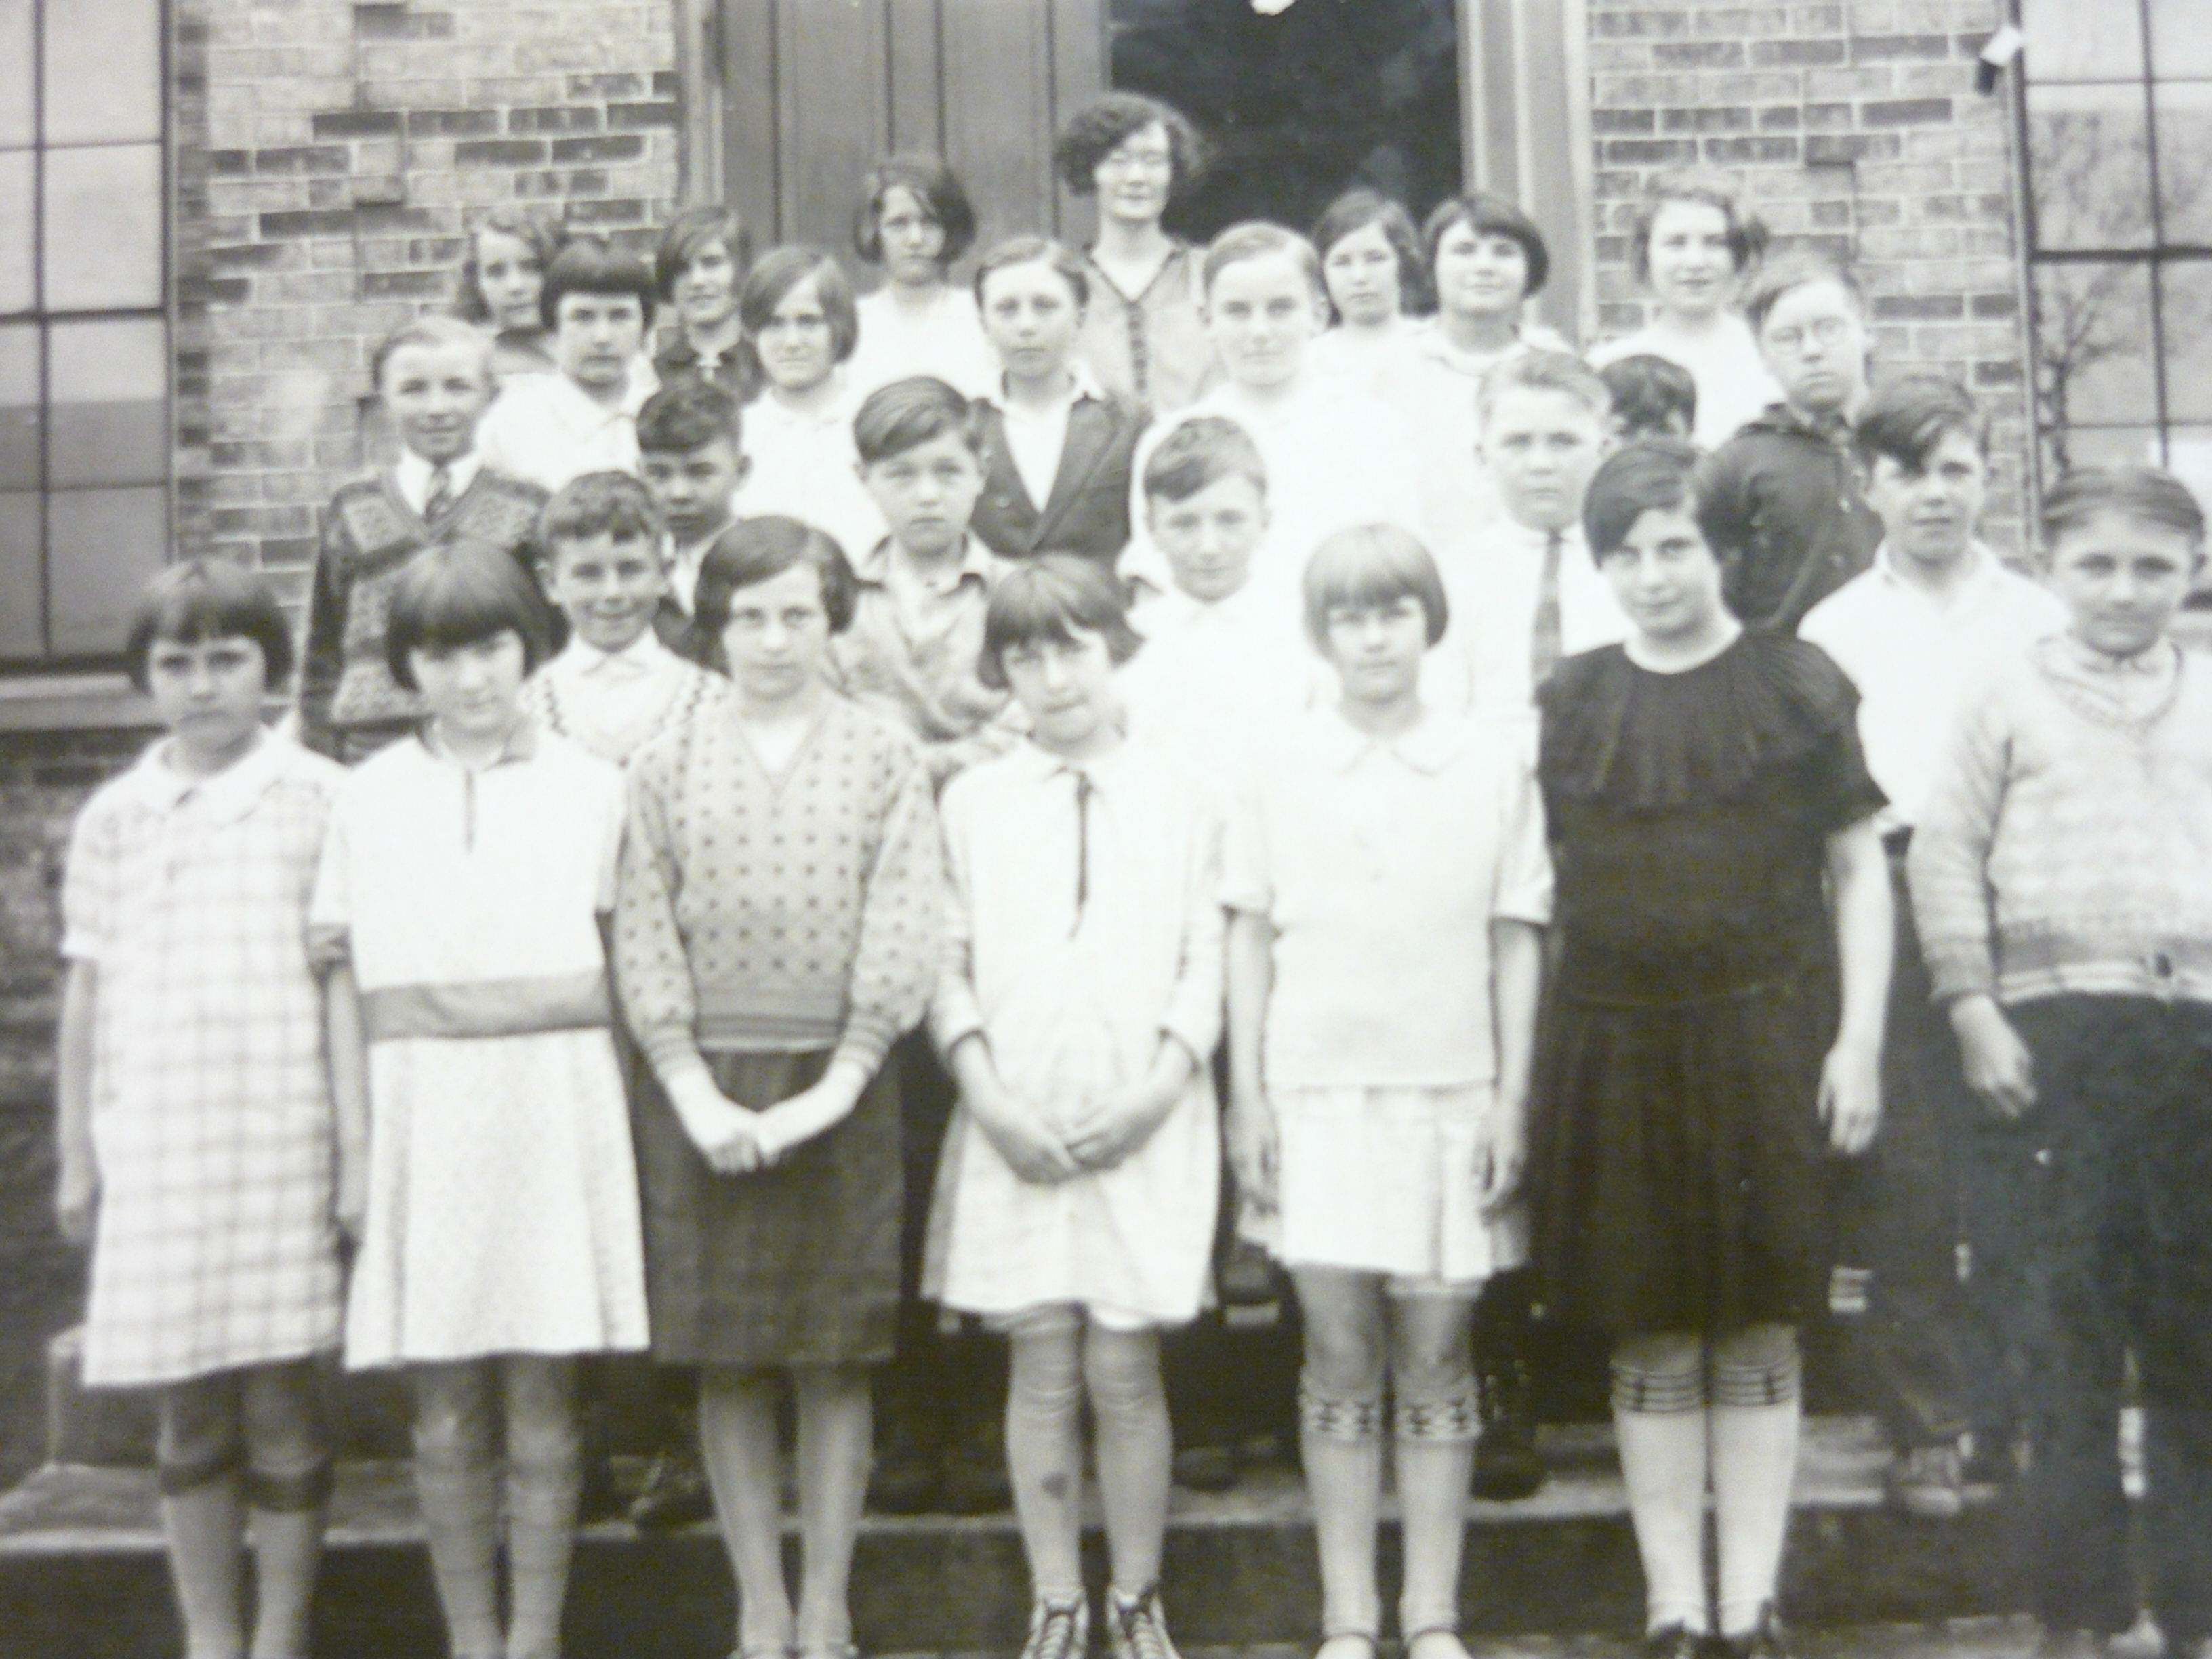 West Main Street School - 1927